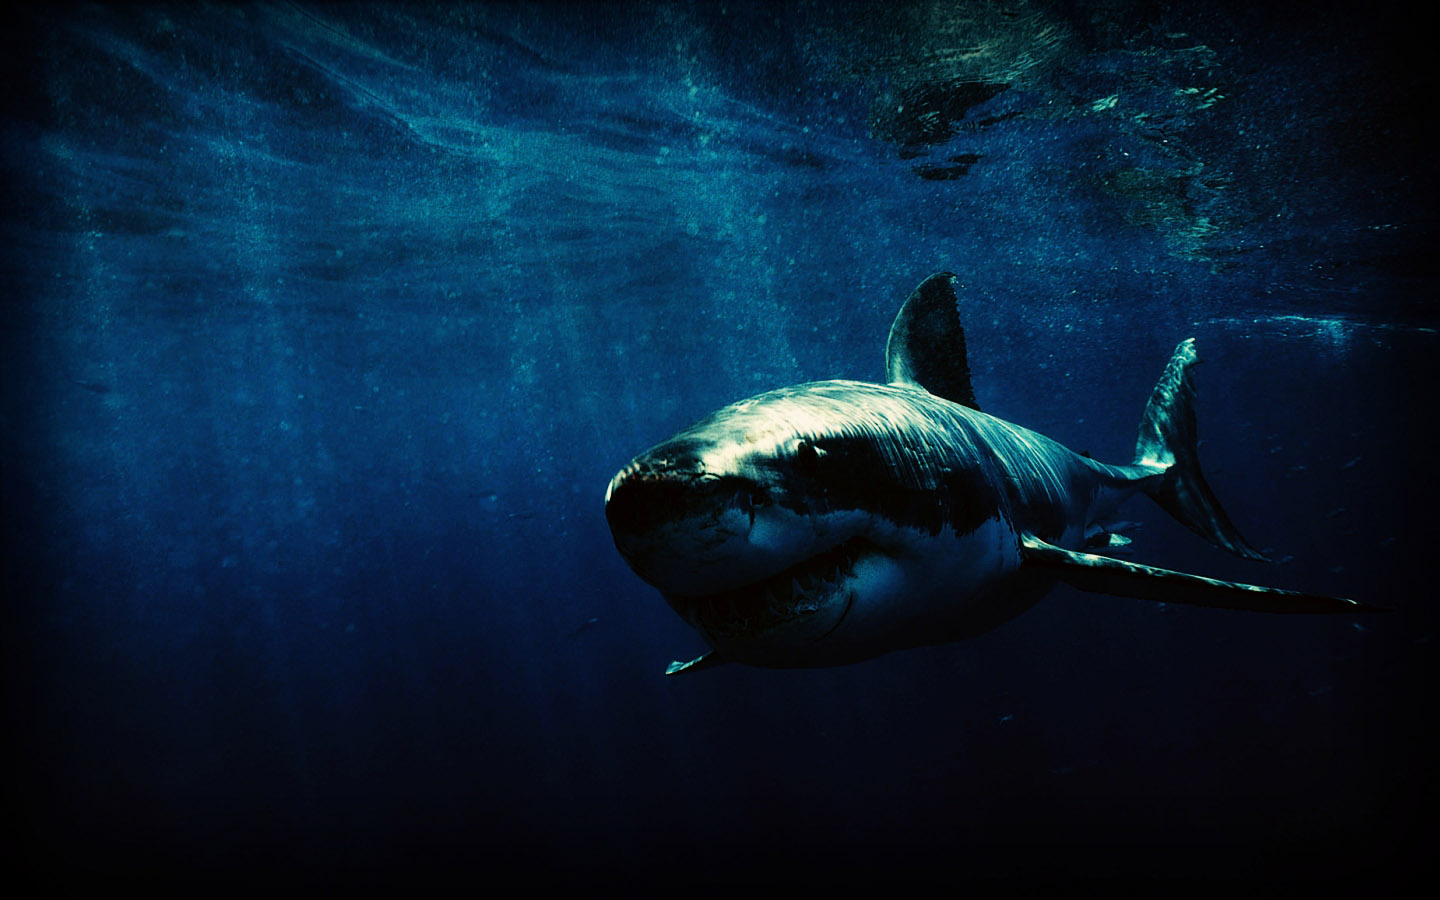 File Name 886628 Shark HD Wallpapers Backgrounds 1440x900